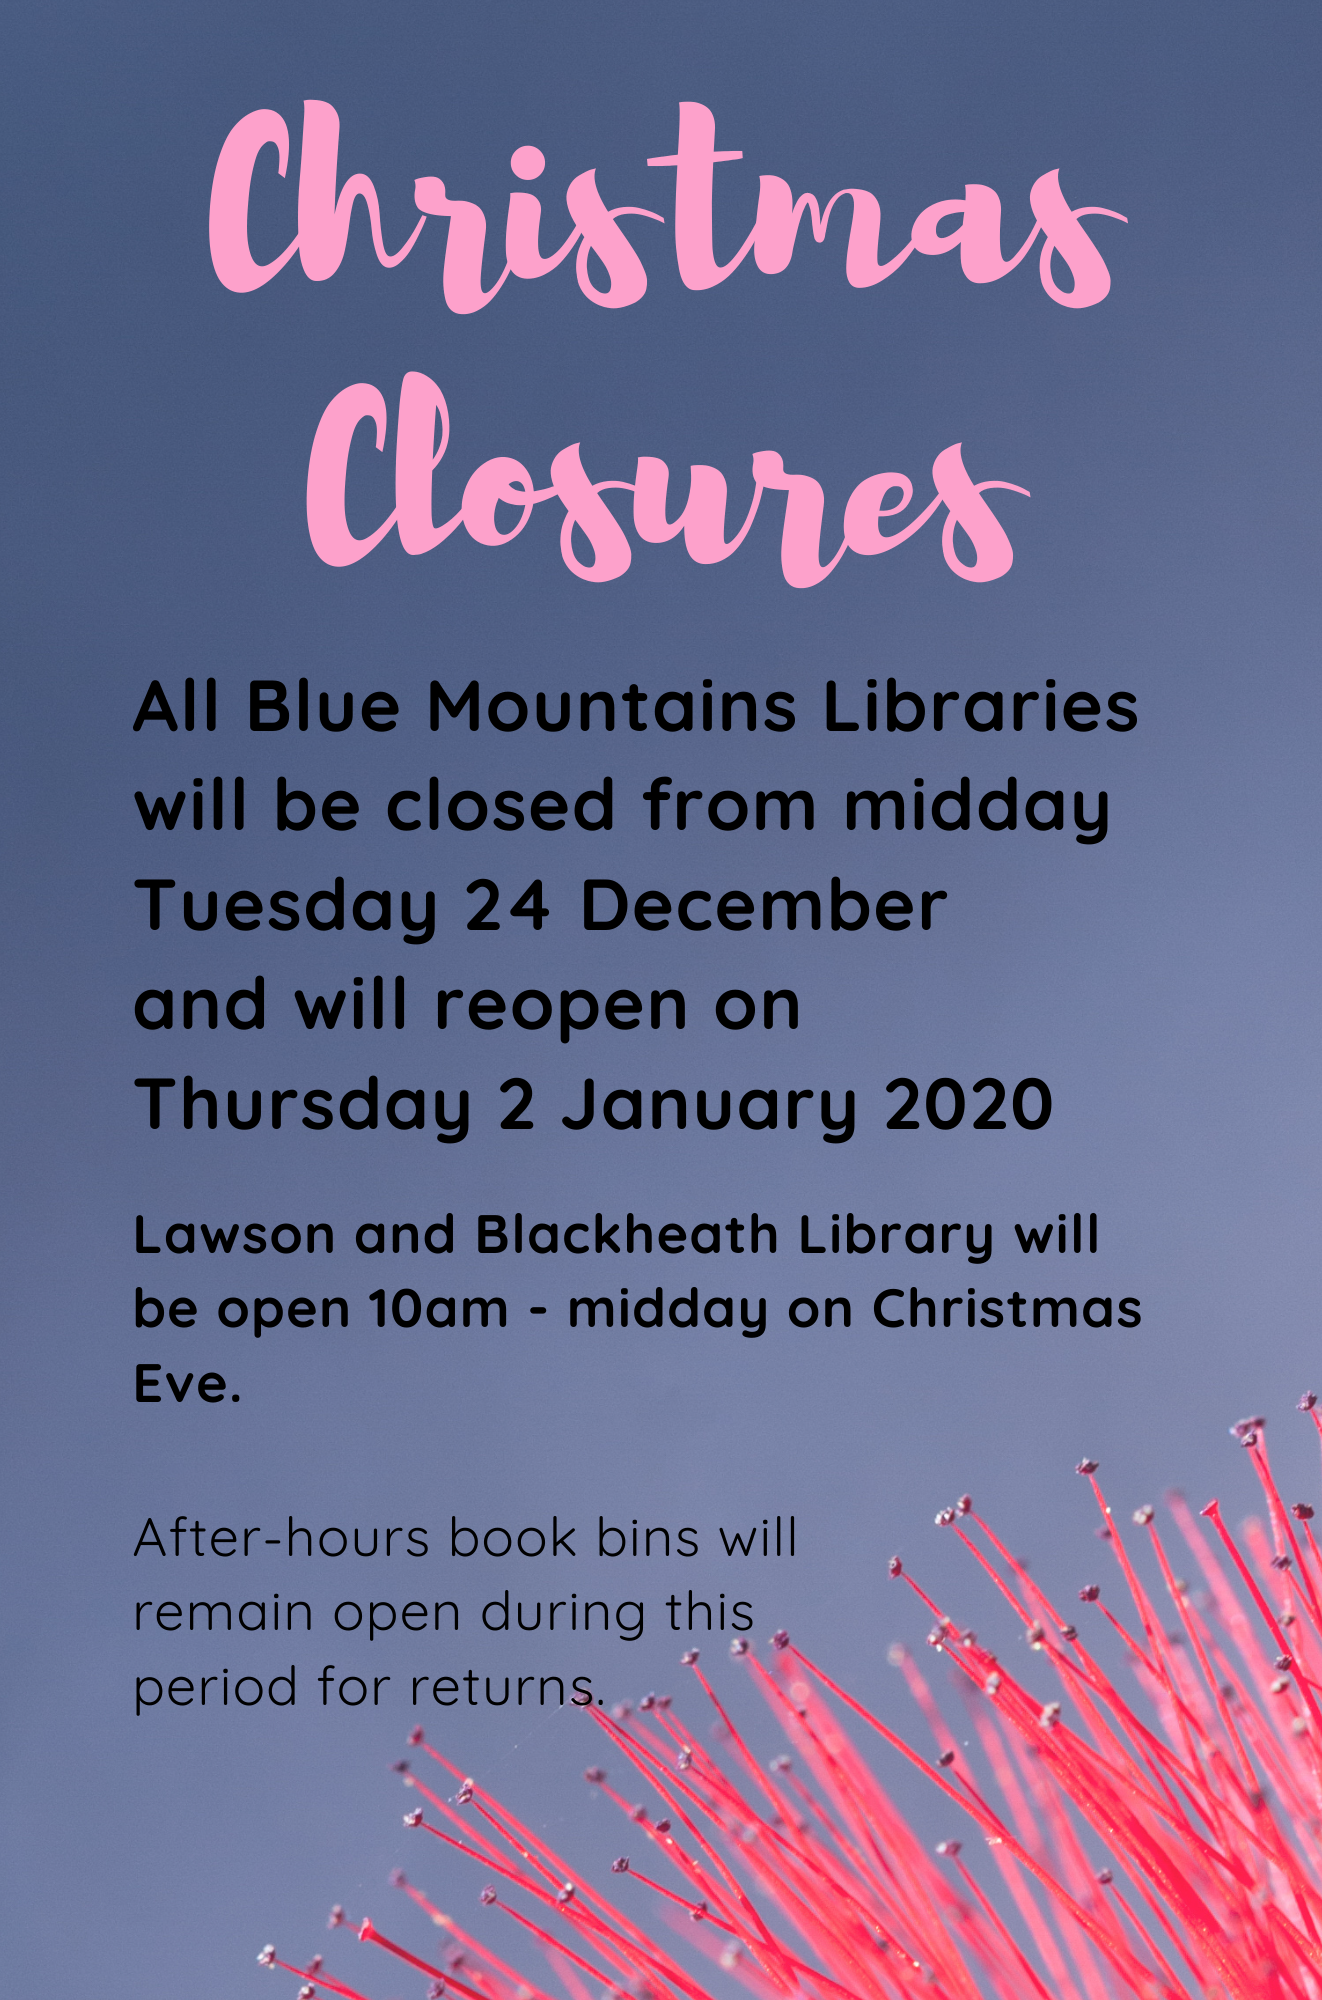 All branches will close at midday on Tuesday 24th of December and reopen Thursday 2nd January